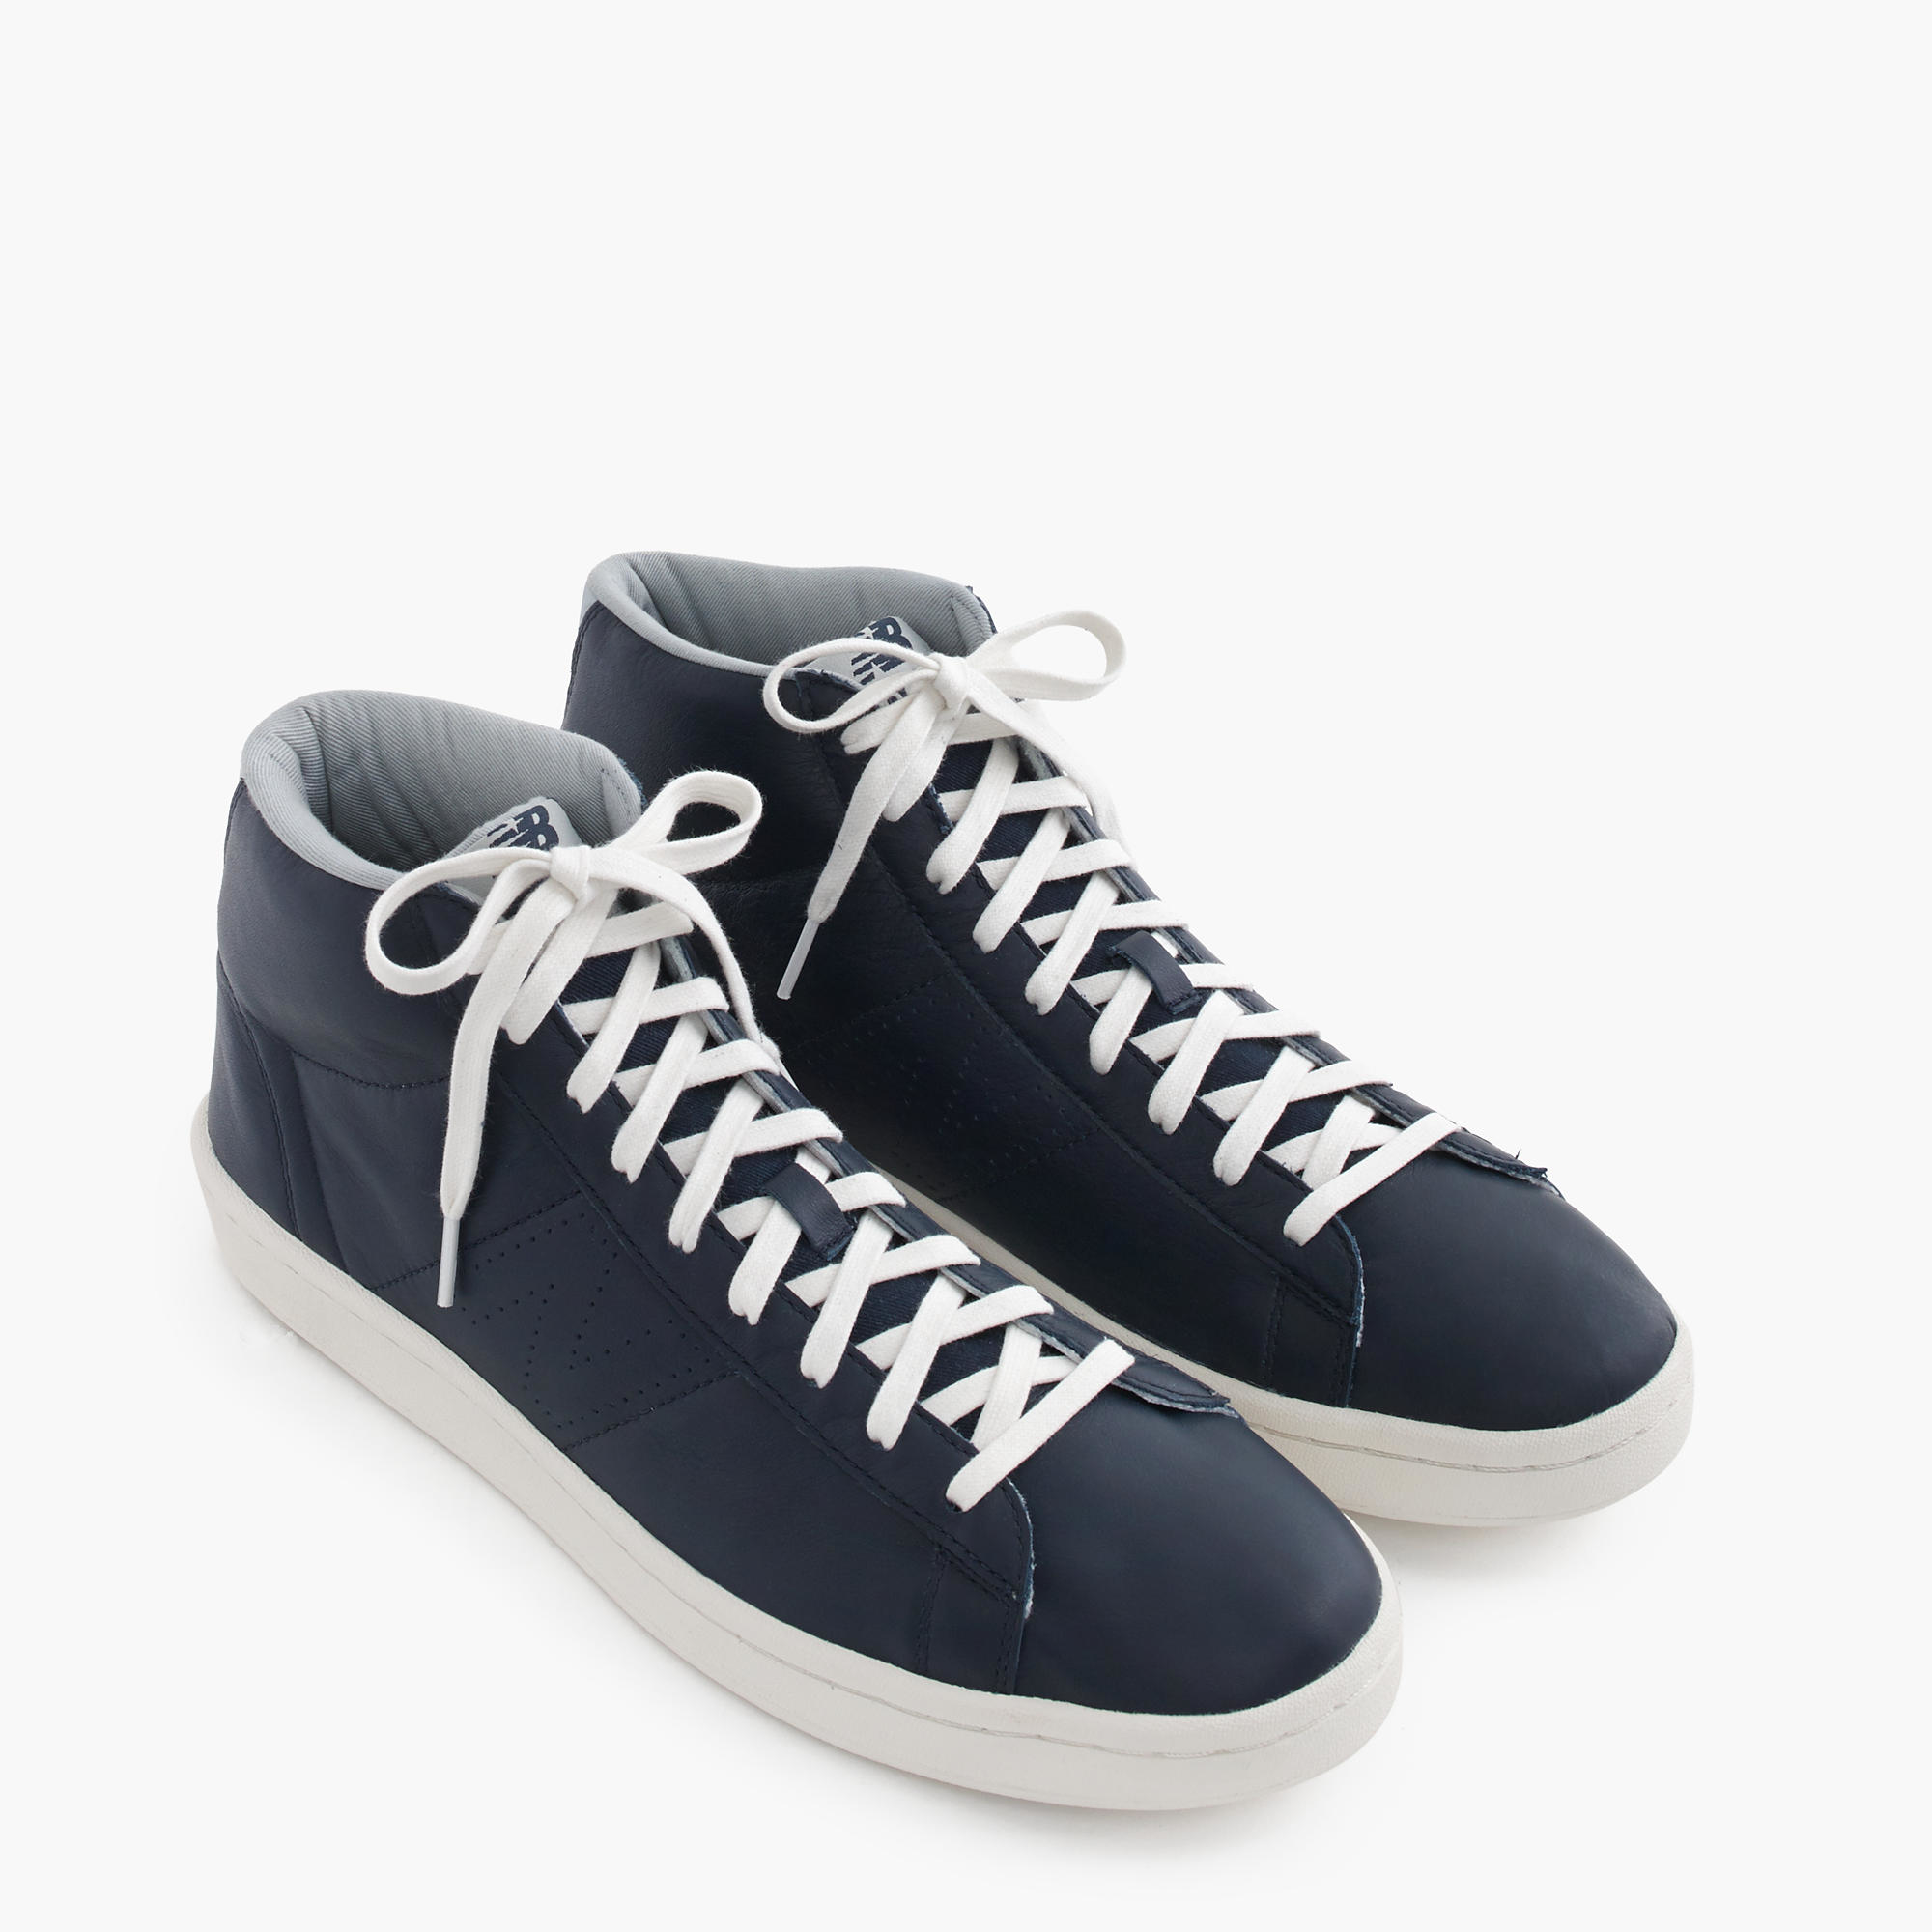 0630f00f8dd J.Crew New Balance 891 Leather Sneakers in Blue for Men - Lyst